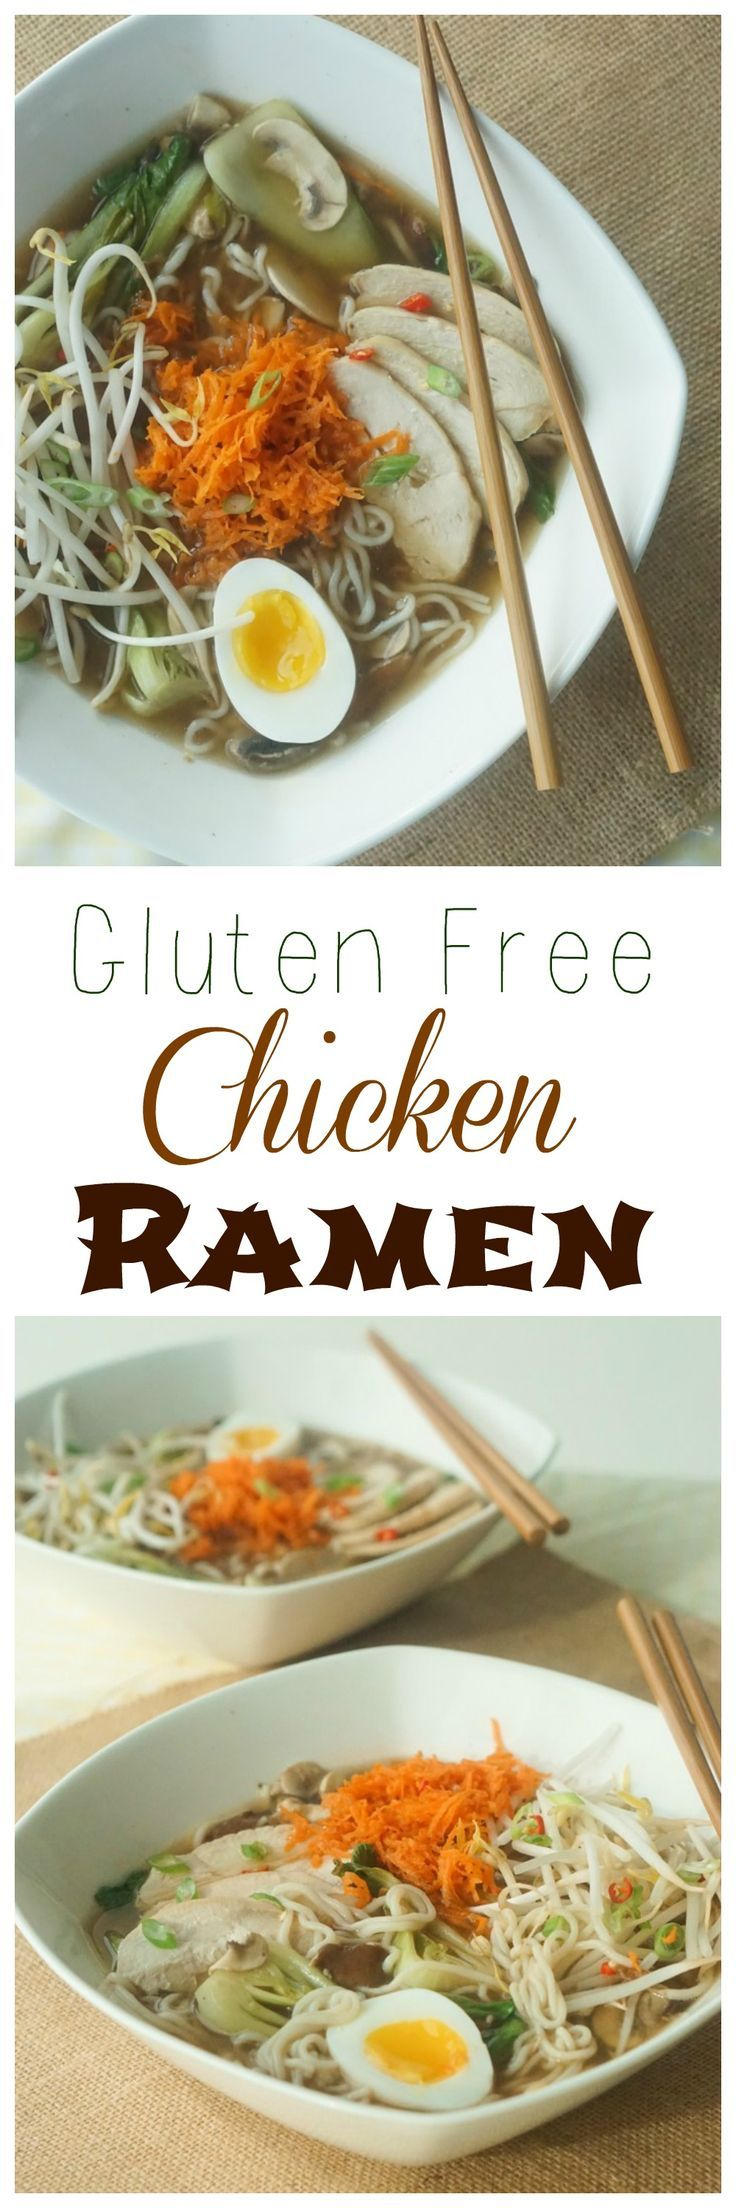 Make my yummy Gluten Free Chicken Ramen Recipe today!